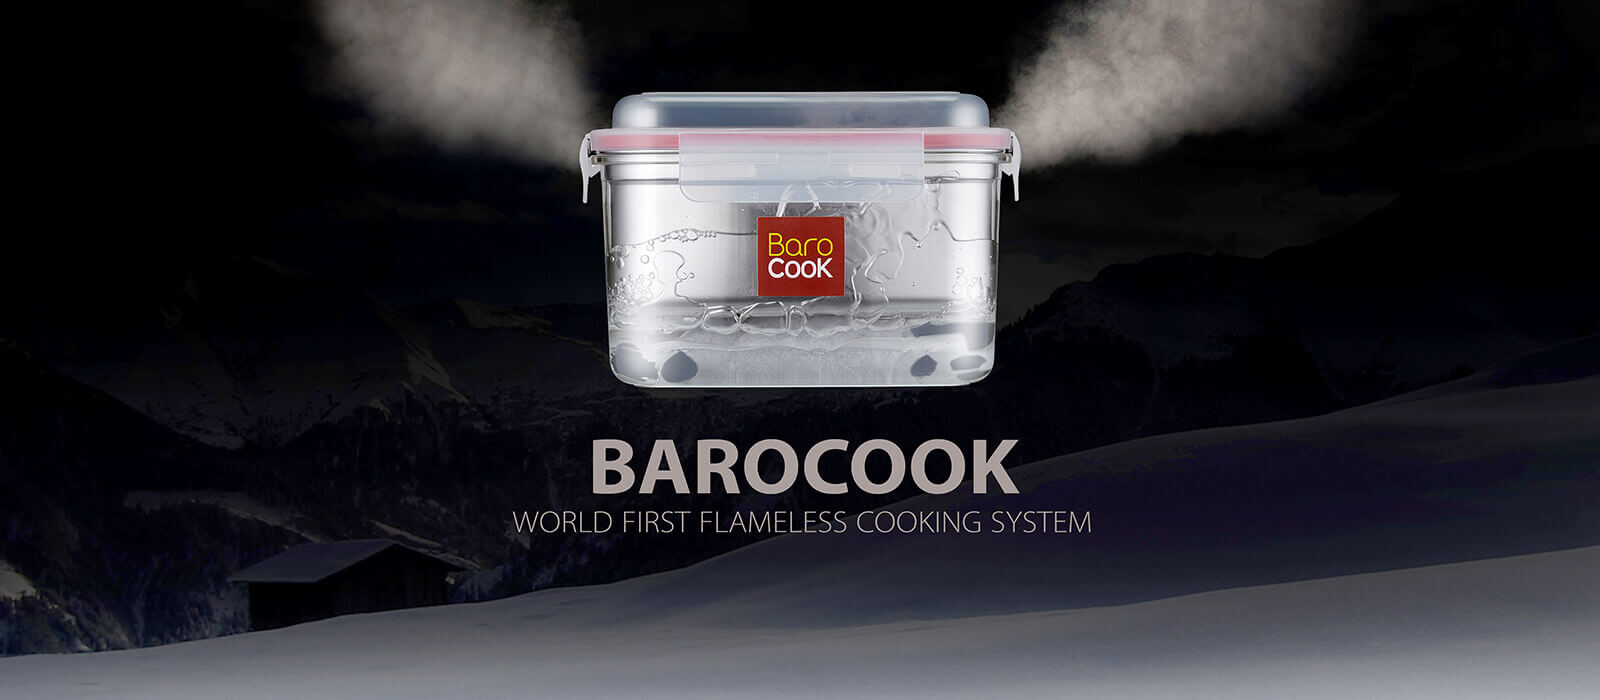 Barocook World's First Flameless Cooking System